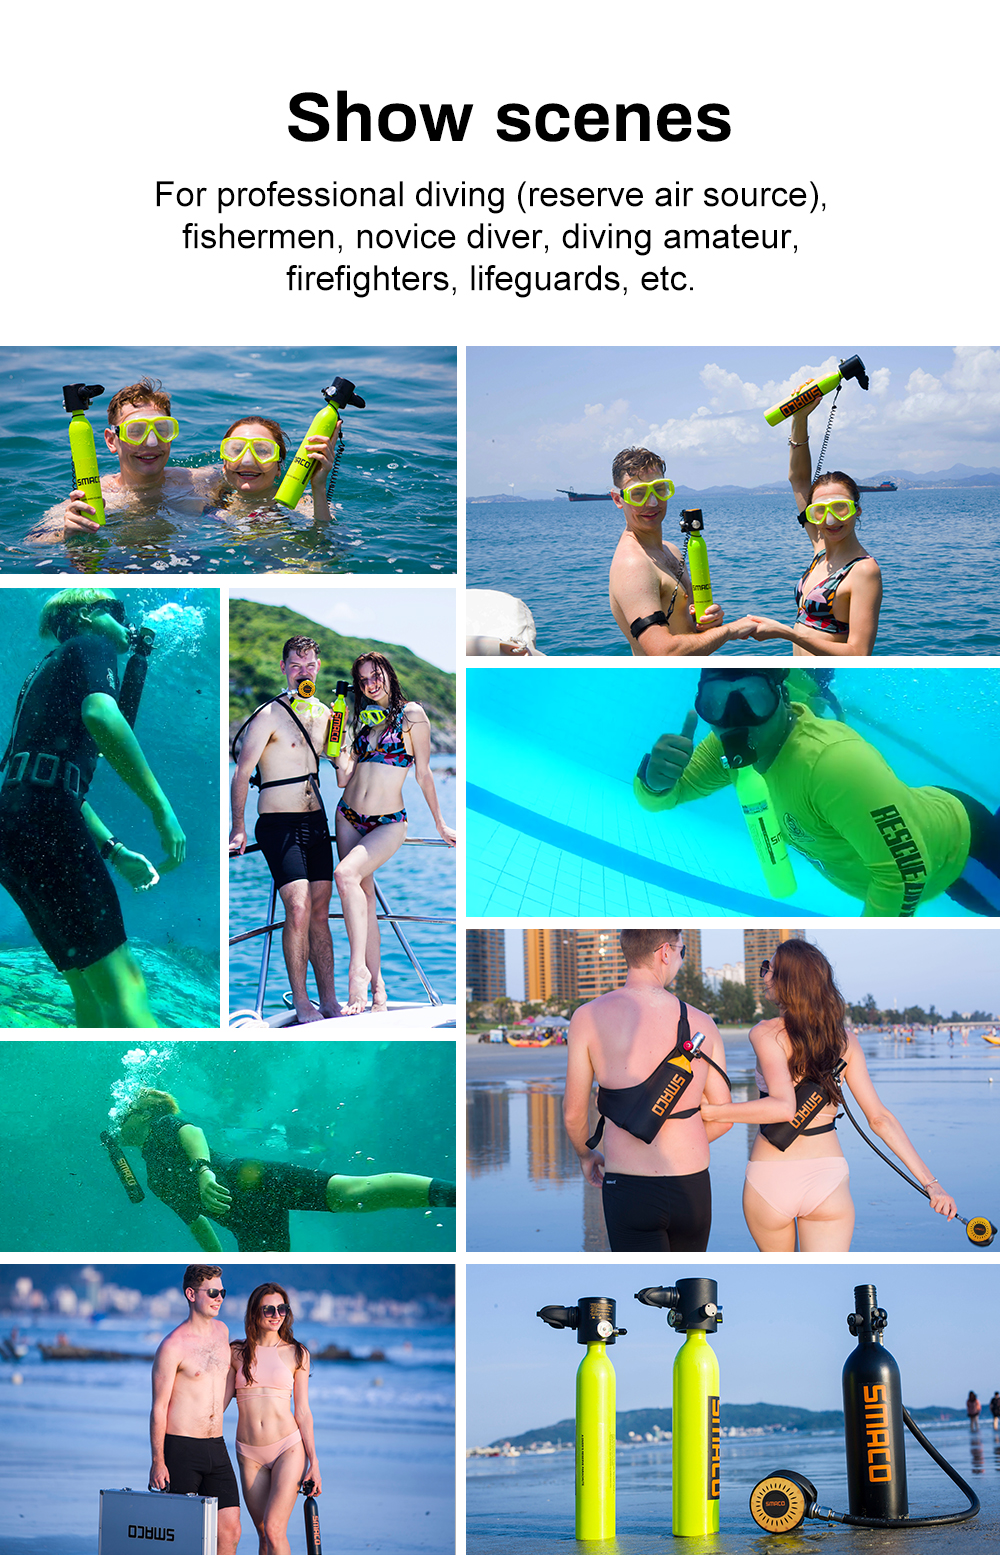 Free breath under water within 10M for 5-10 minutes cylinder equipment diving tank Mini scuba